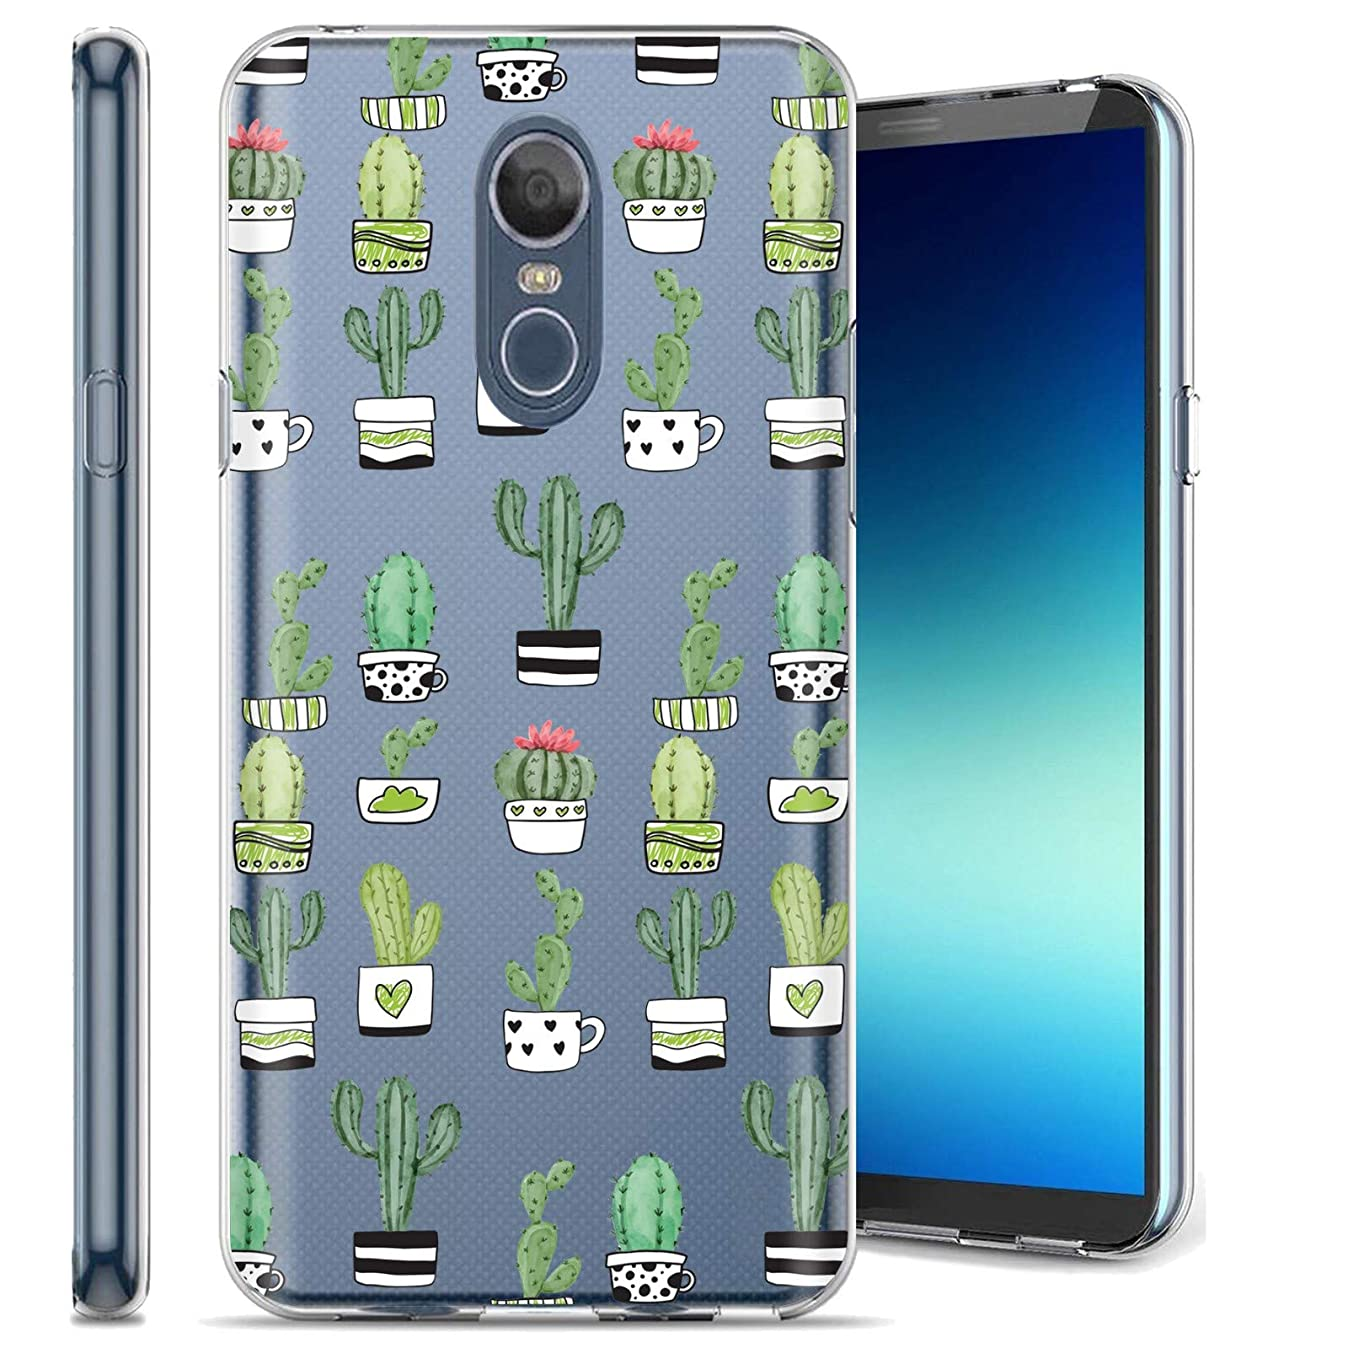 LG Stylo 4 / Stylo 4 Plus Phone Cover Case by [TalkingCase], Clear Premium Thin Gel Phone Cover, Ultra Flexible Slim TPU, Made Specially for LG Stylo4,Stylo4 Plus [Cute Cactus Watercolor] Design z8673614994